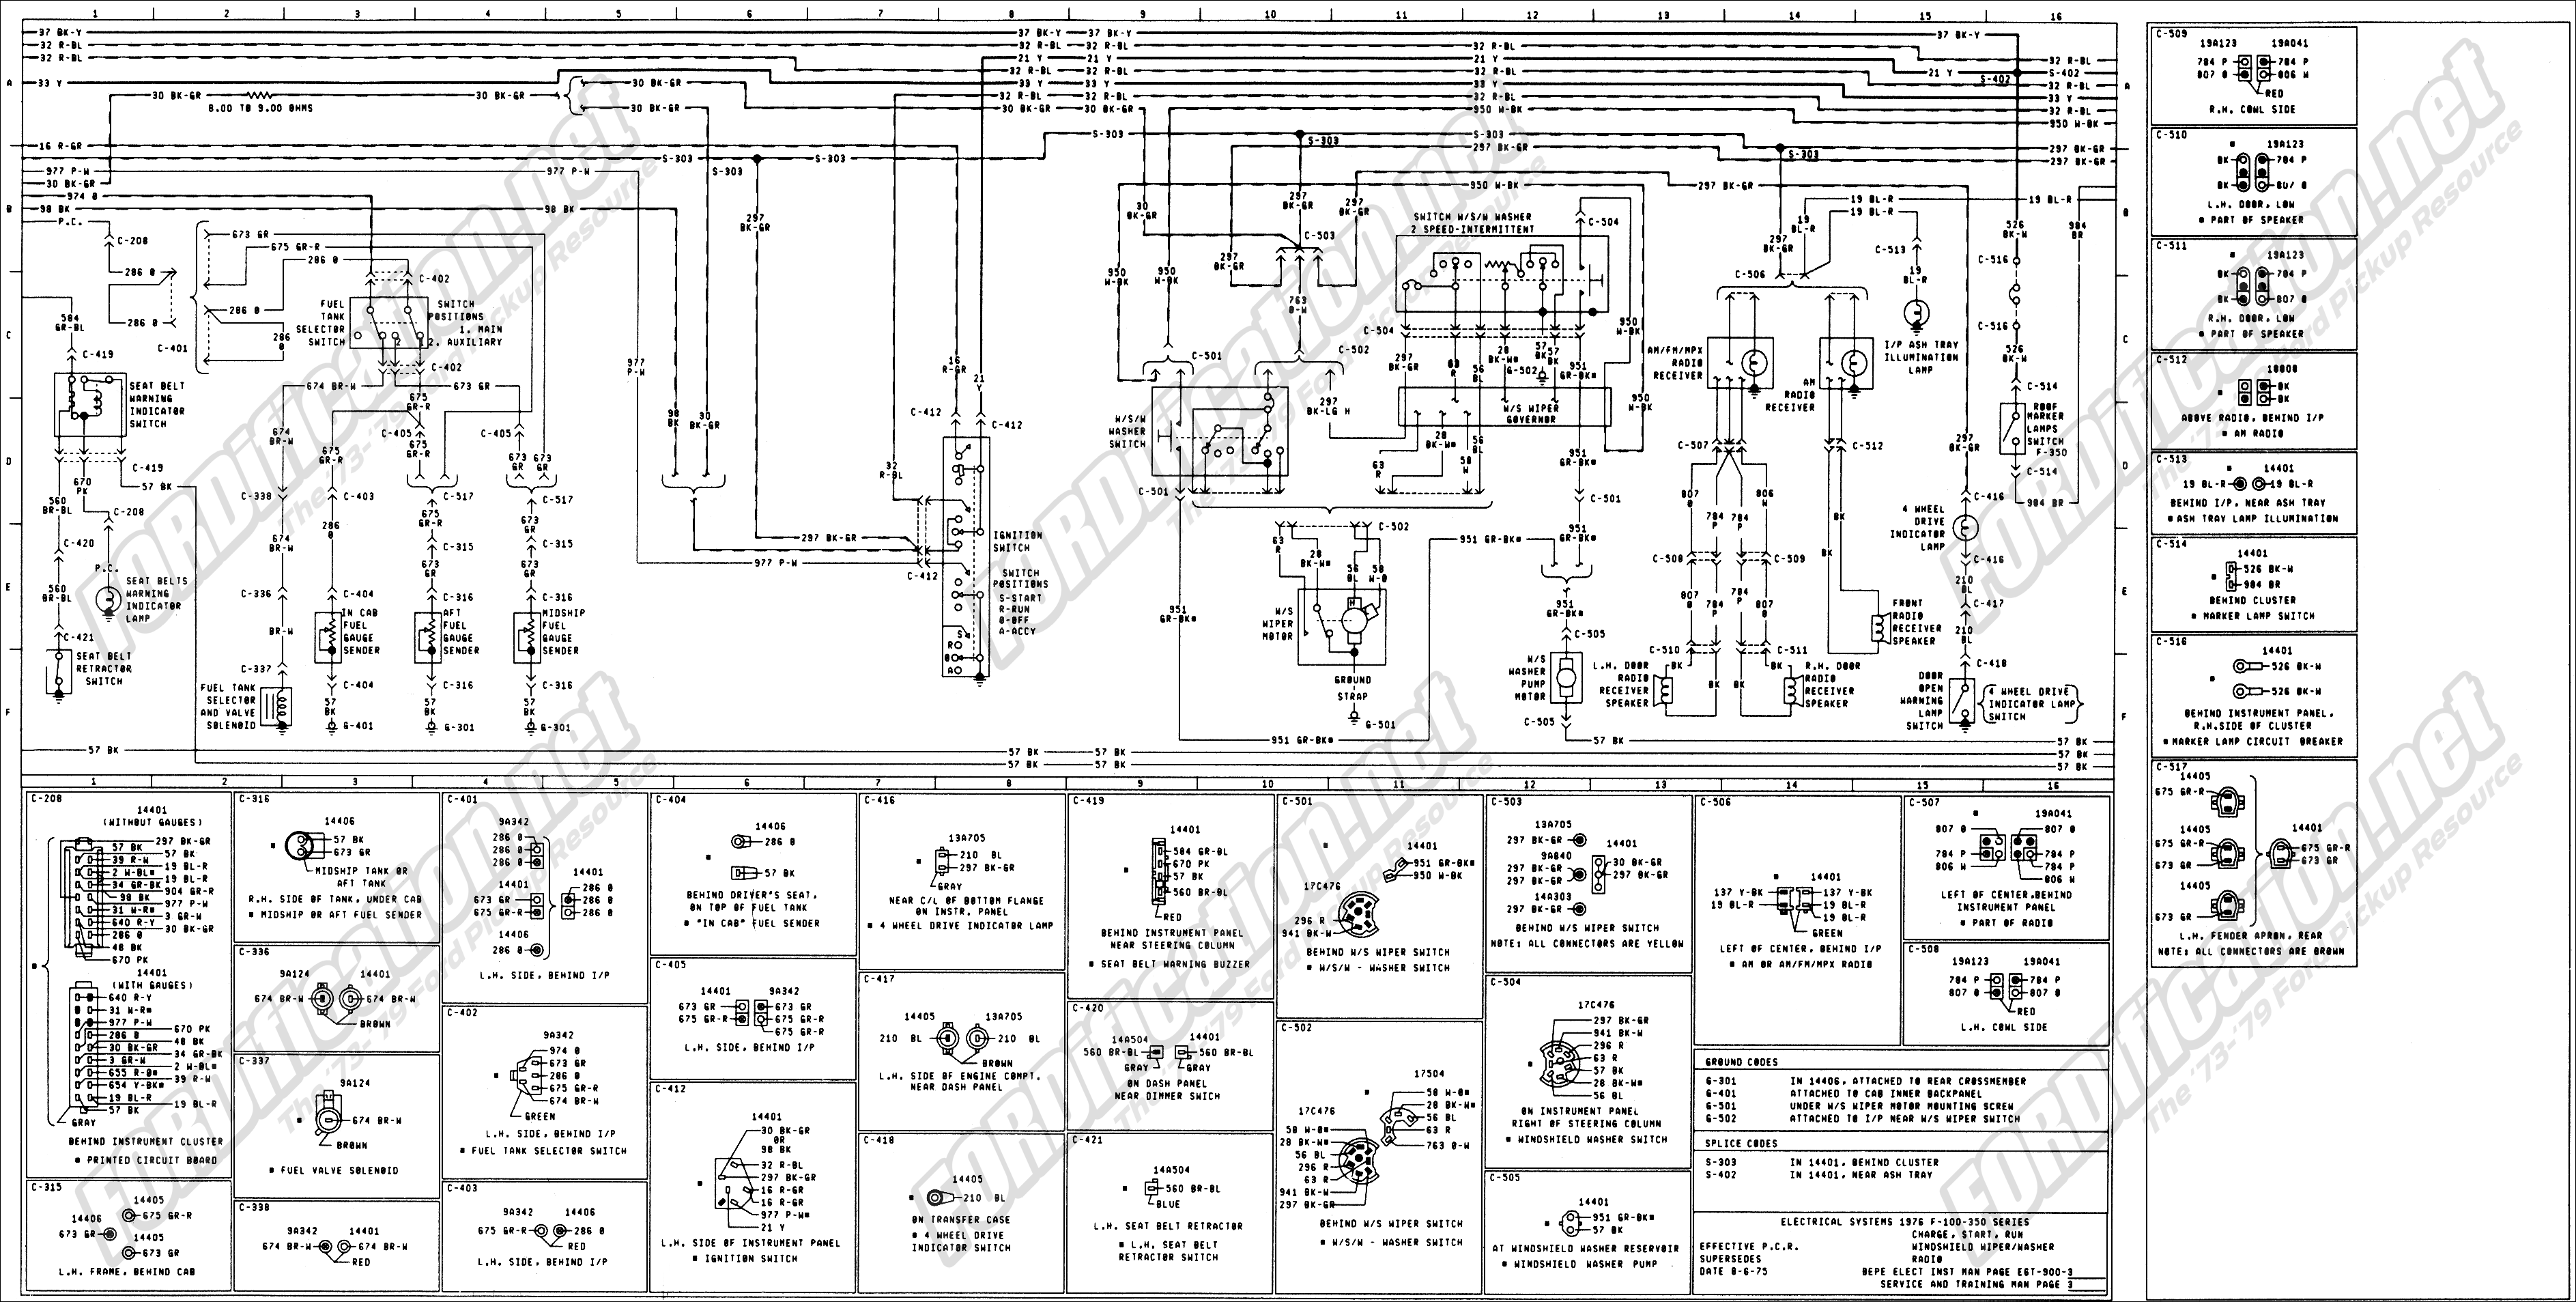 wiring_76master_3of9 1973 1979 ford truck wiring diagrams & schematics fordification net 2003 ford f250 wiring diagram online at mifinder.co